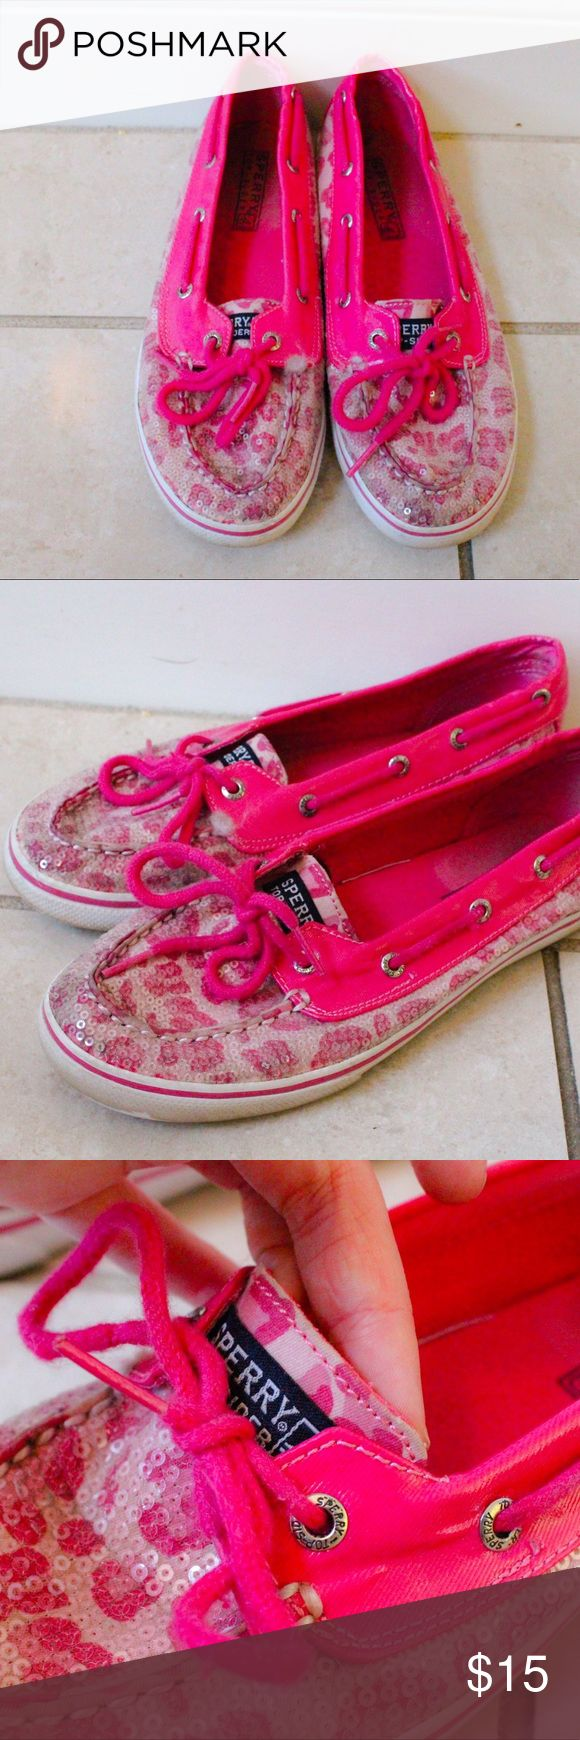 Rare Sperry Boat Shoes Pink Sequined Cheetah Print BACK TO SCHOOL CLEARANCE SALE     Lightly loved Sperry Top Siders.  Sequined with a vibrant pink color & Cheetah print design.  Slight fade inside & fluff on inner side of right shoe.  Minor scuff on bottom & toe. Awesome print to add fair to any outfit! KIDS SIZE 5M, FITS WOMAN SIZE 7.   - All items cleaned before shipping.    -  Make me an offer & BUNDLE to save!  Sperry Top-Sider Shoes Sneakers